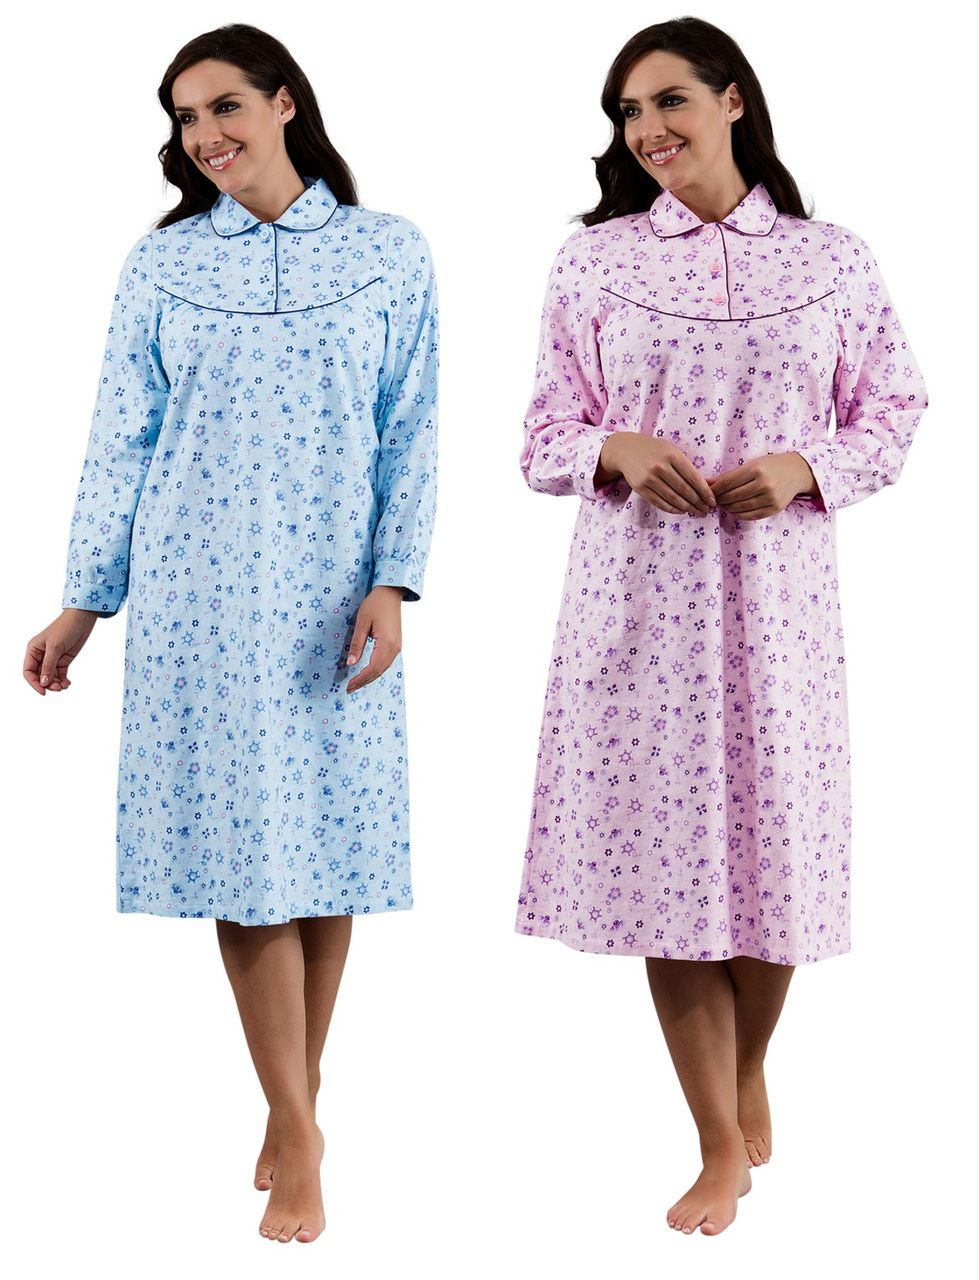 Peochi Womens Floral Brushed Cotton Nightdress (Blue or Pink) - Mill Outlets 26d6bab06